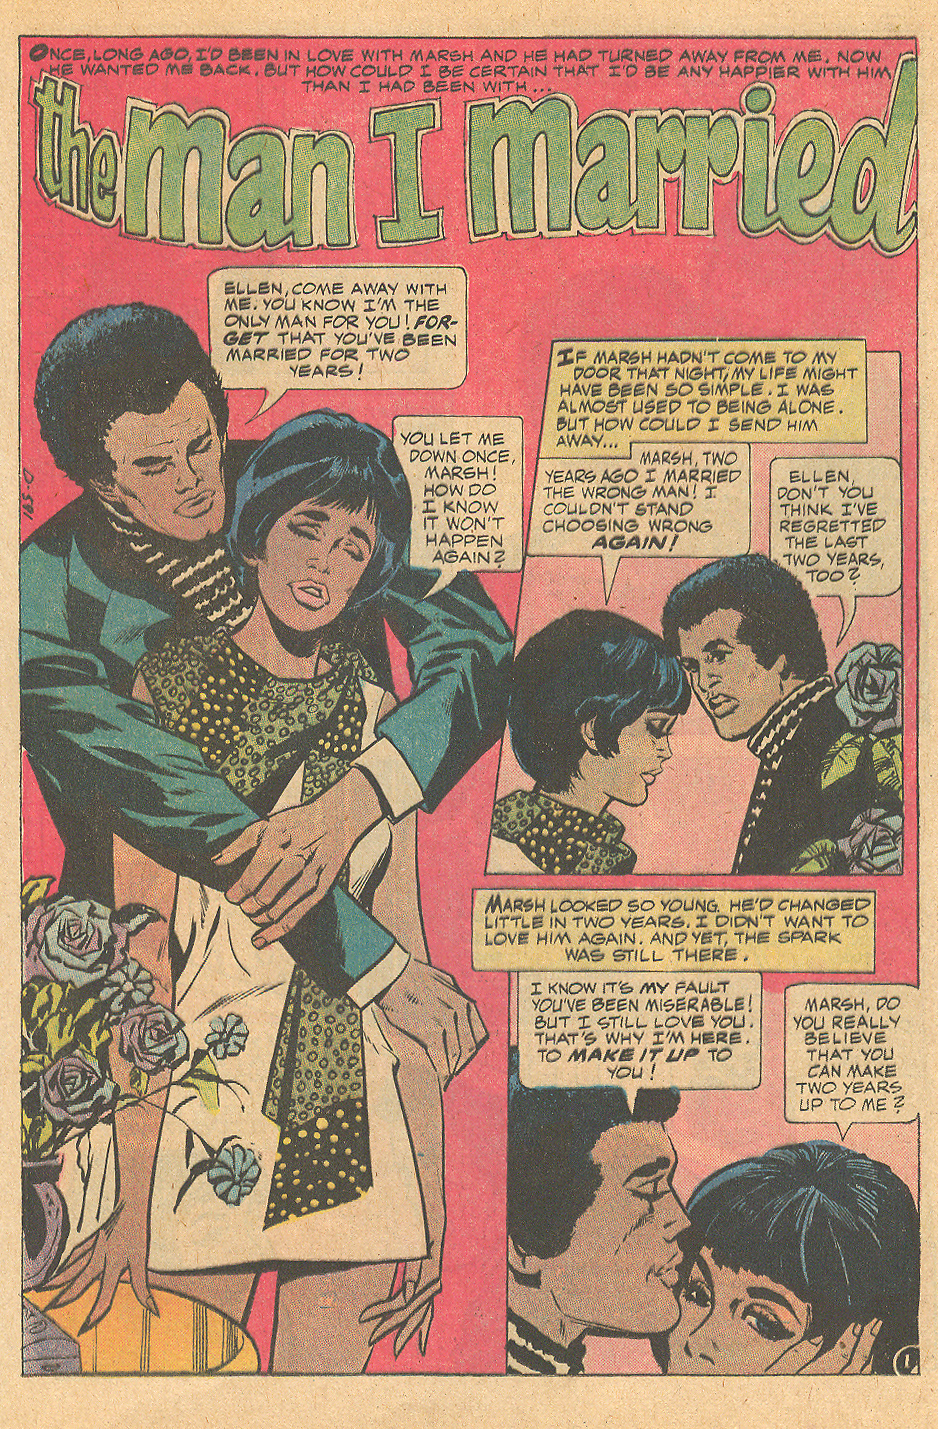 """The Man I Married"" from Heart Throbs #138 (February 1972)"